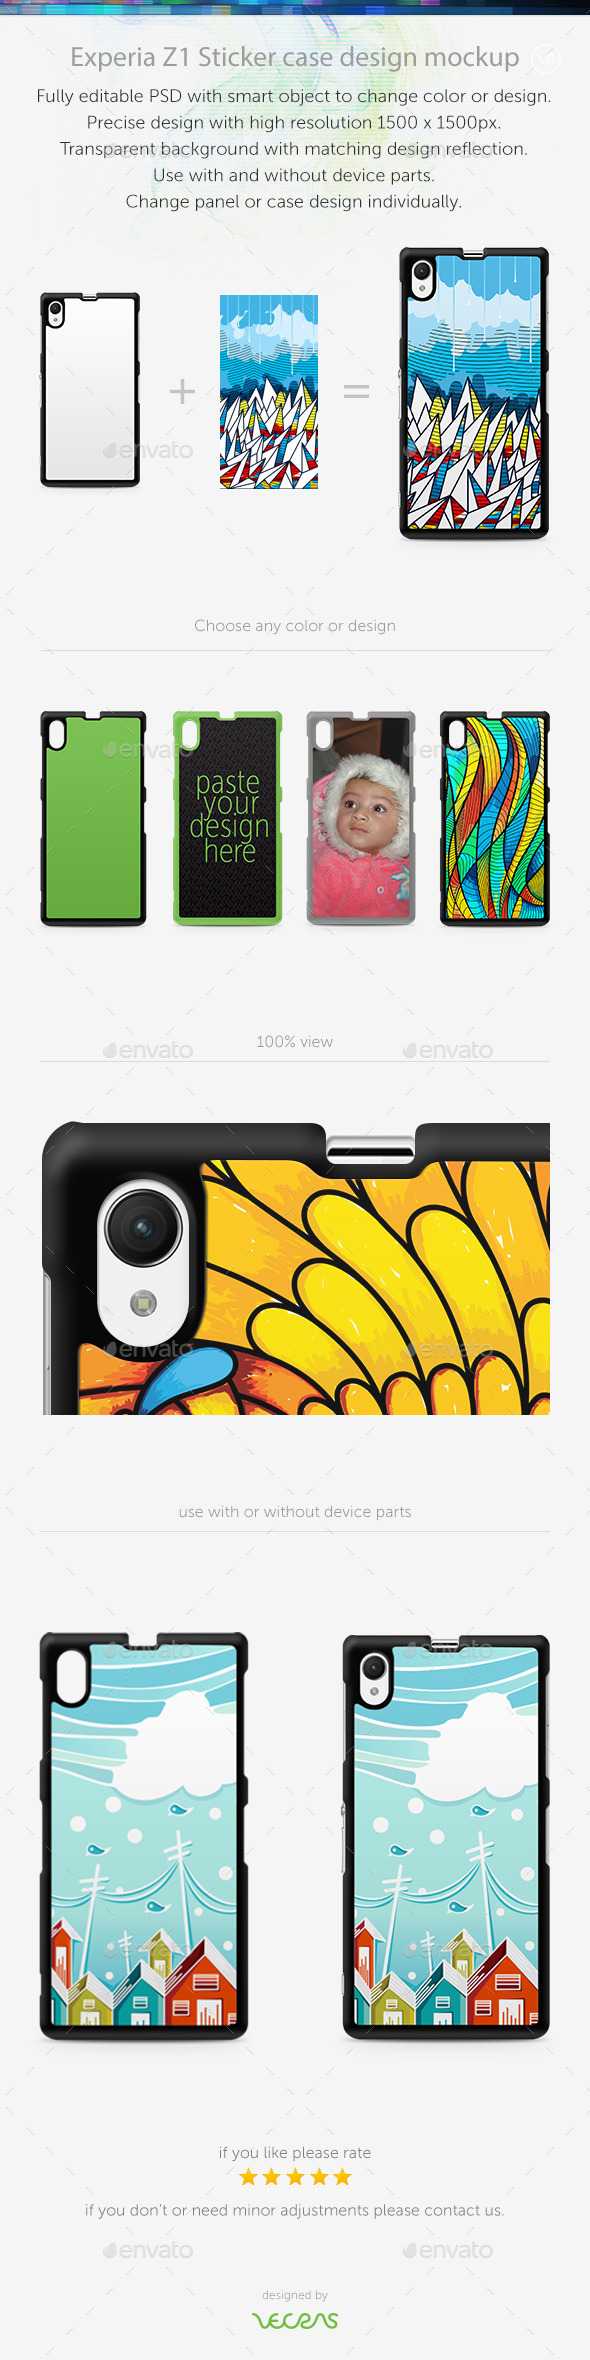 GraphicRiver Experia Z1 Sticker Case Design Mockup 10449559